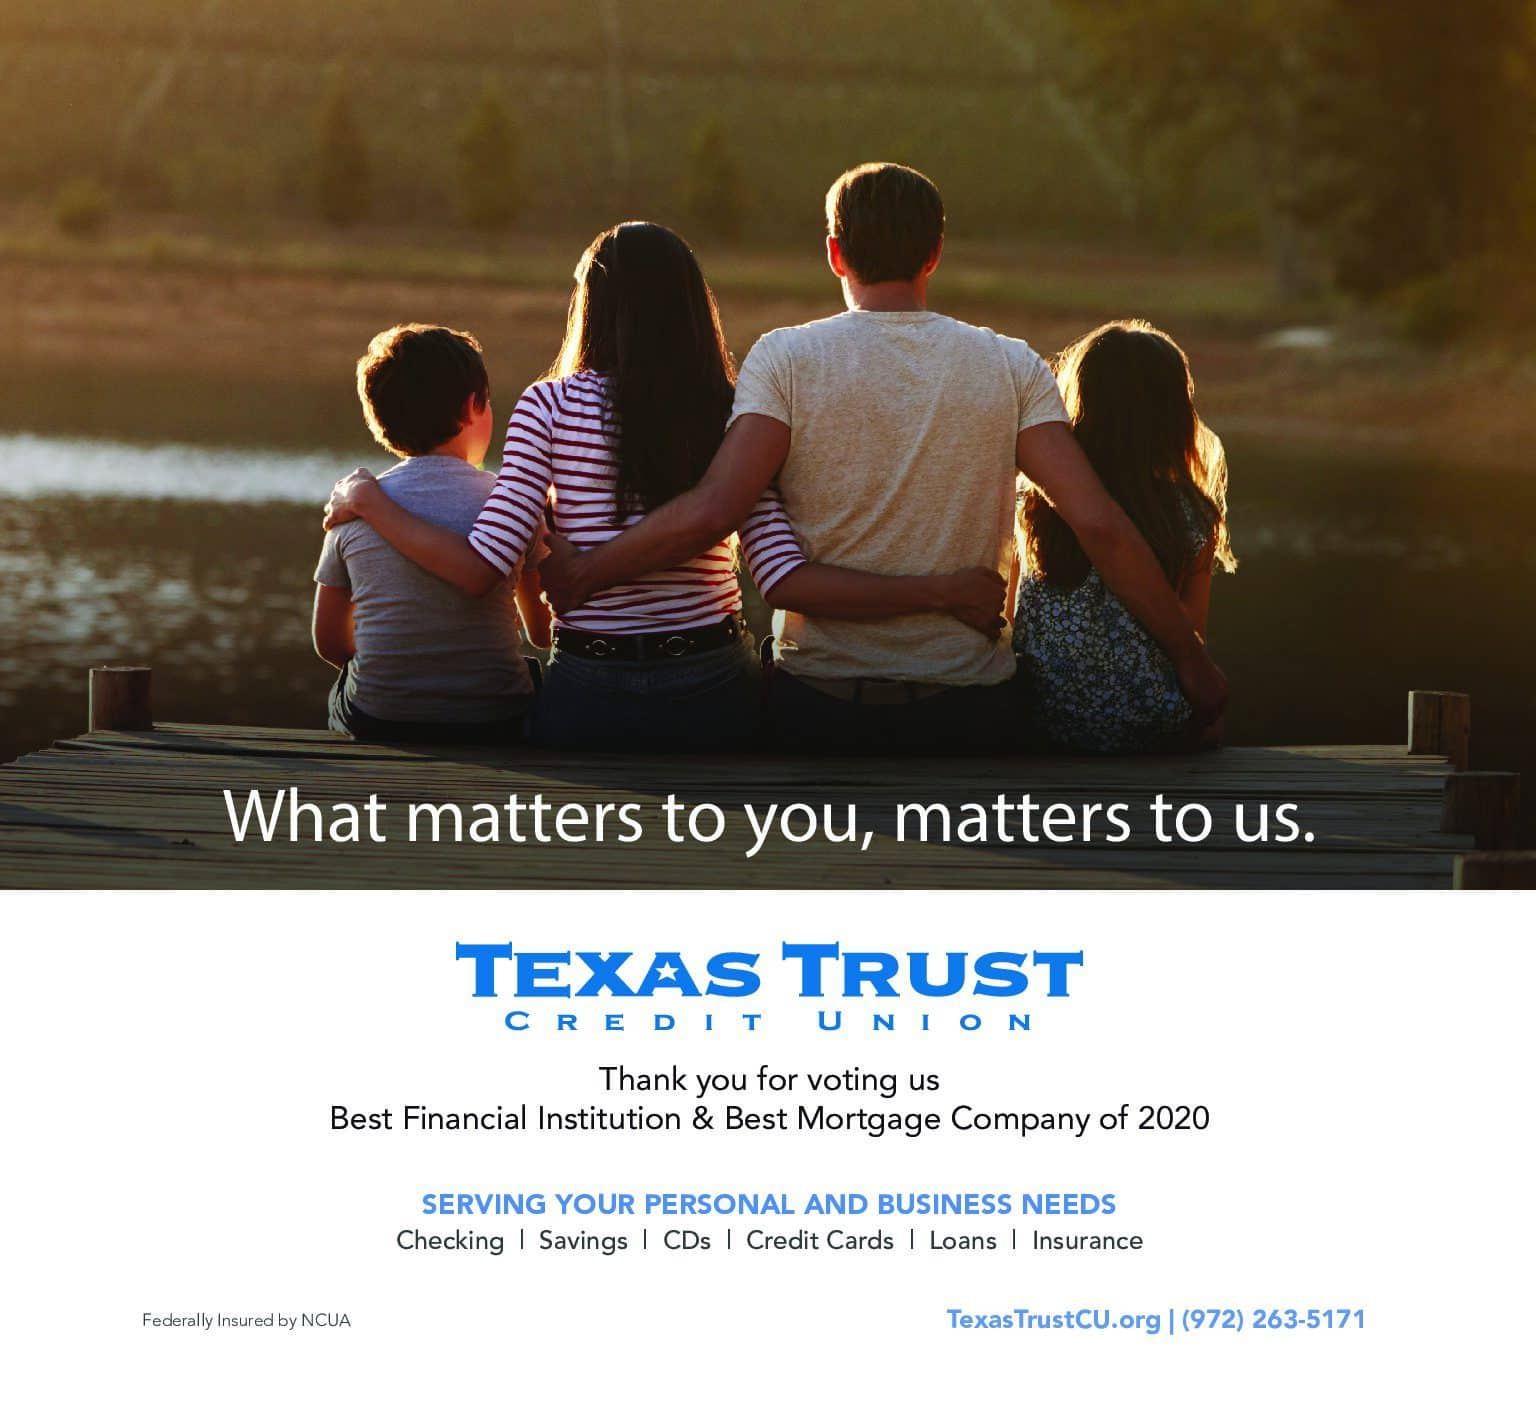 Texas Trust Has History of Supporting Community